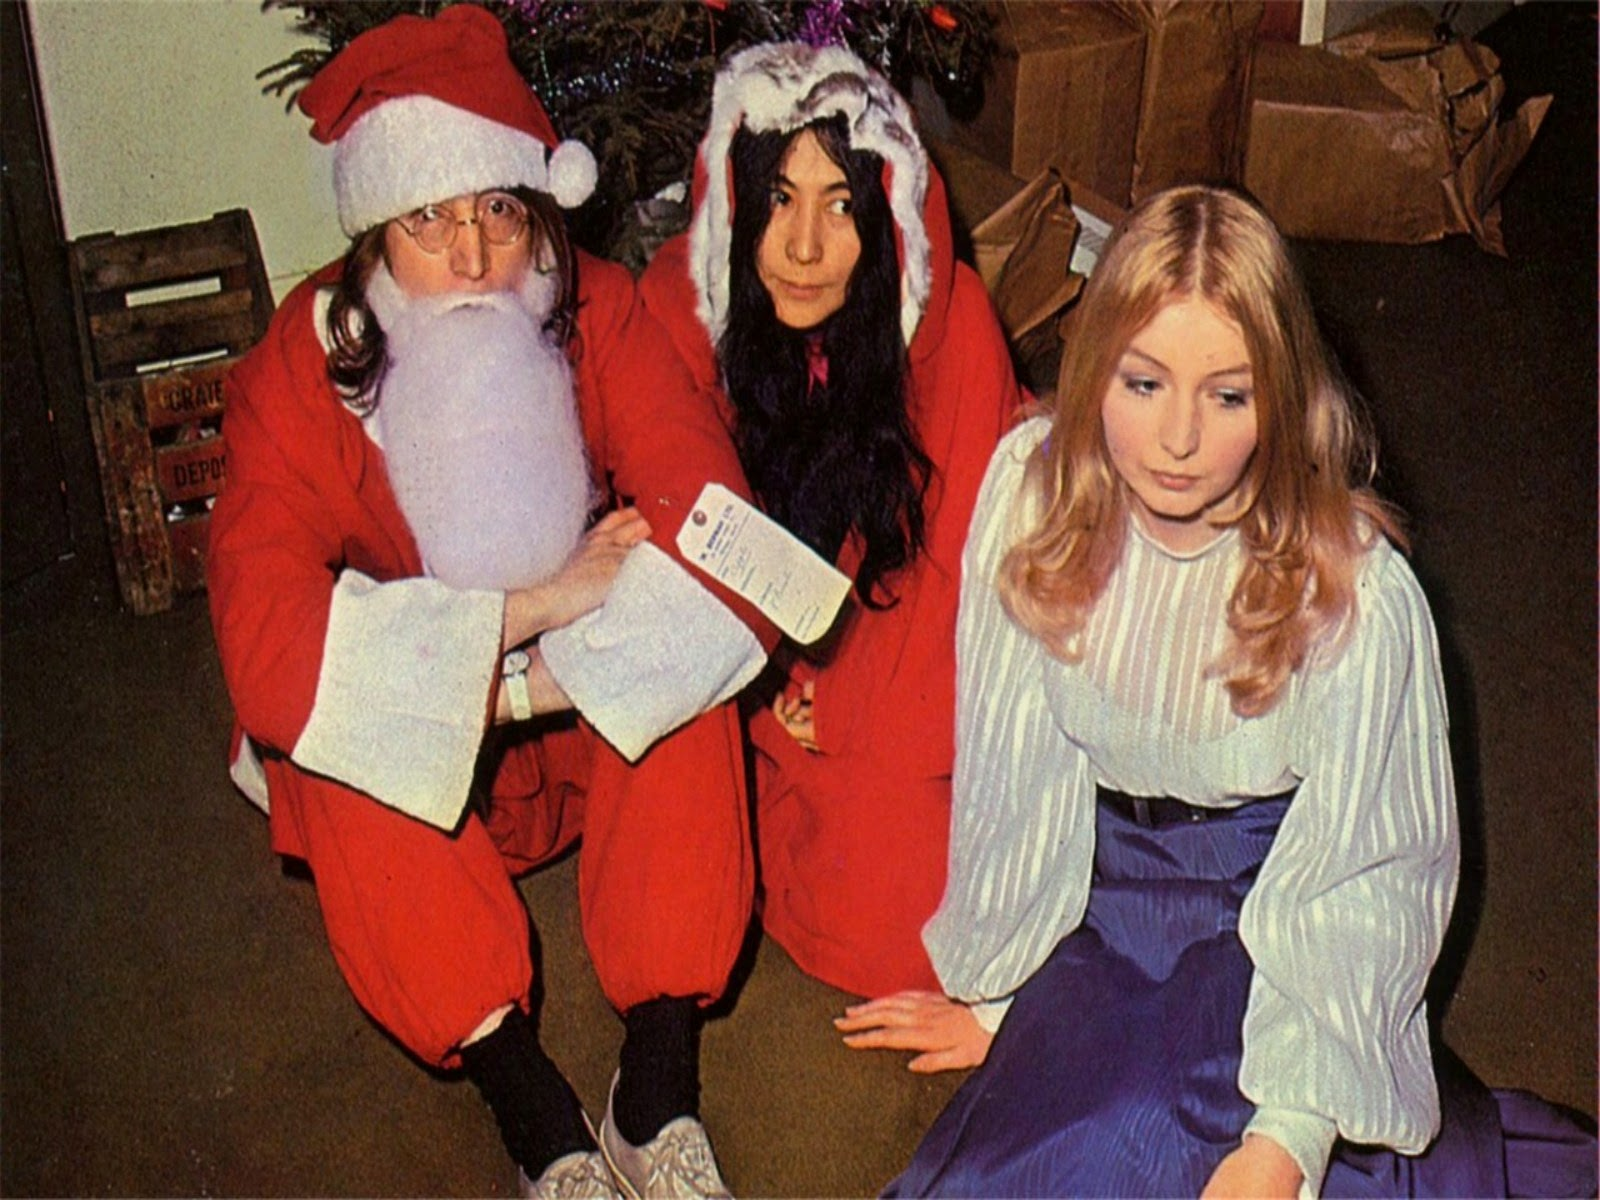 John Lennon, Yoko Ono and Mary Hopkins at the 1968 Apple Xmas party ...